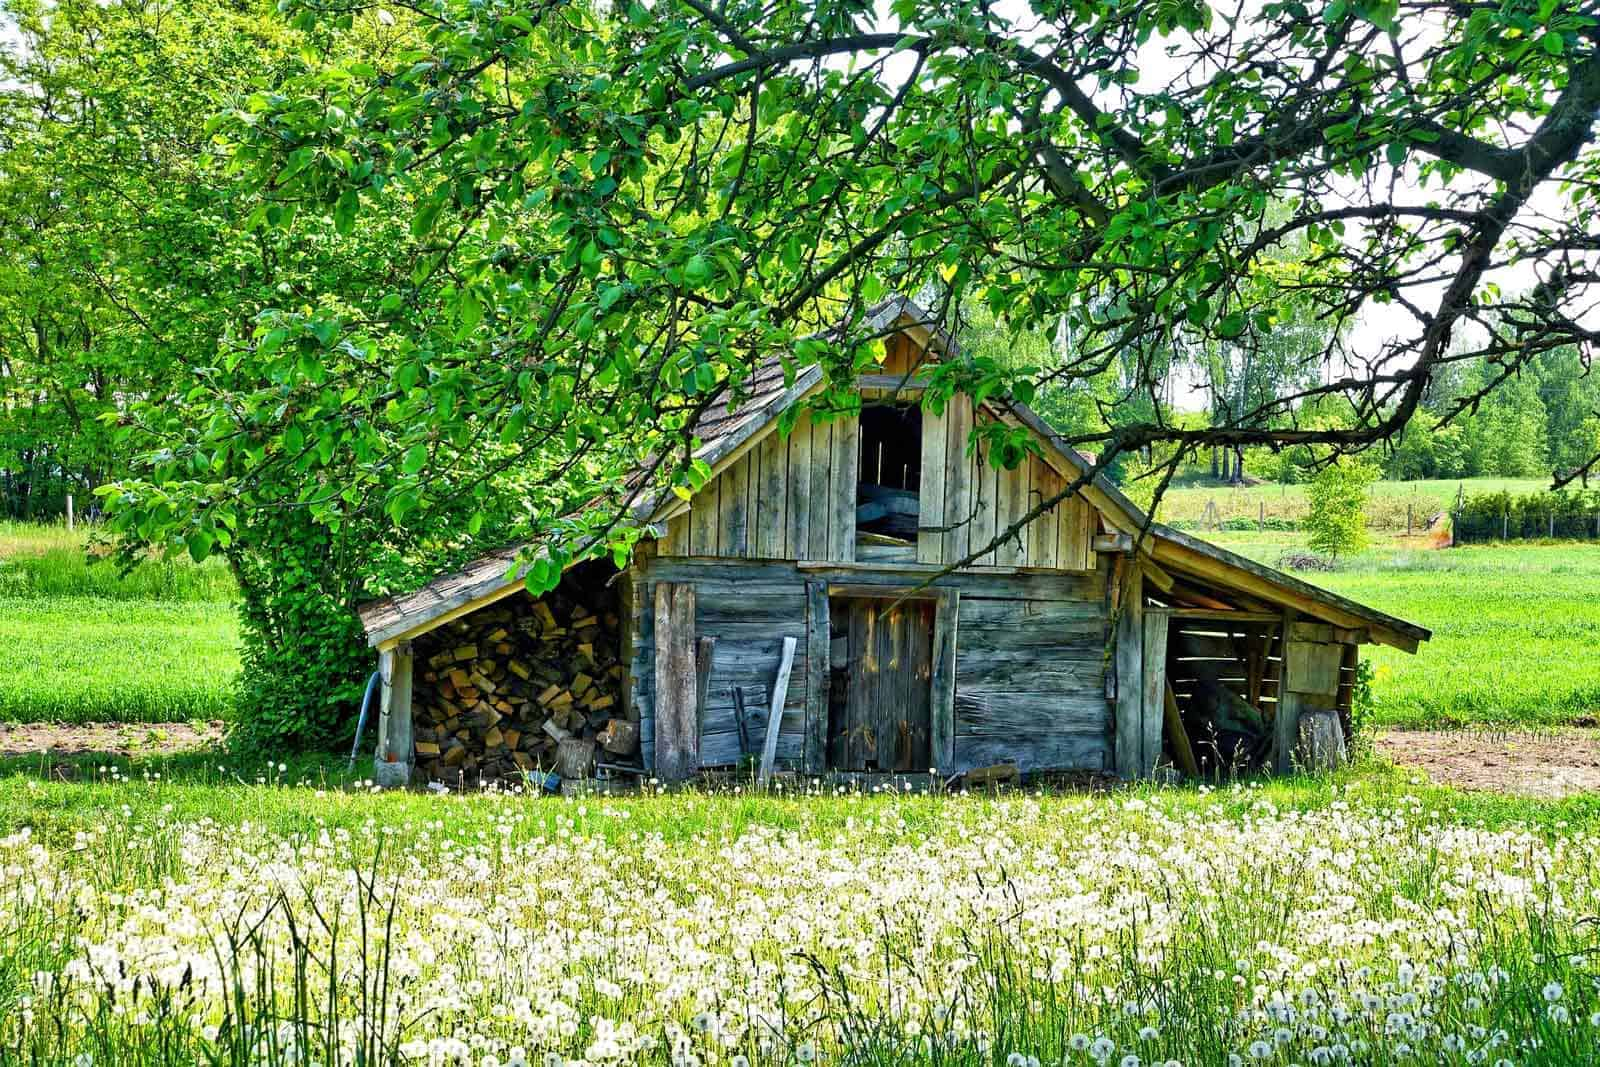 A wooden shed in a nature setting in spring.